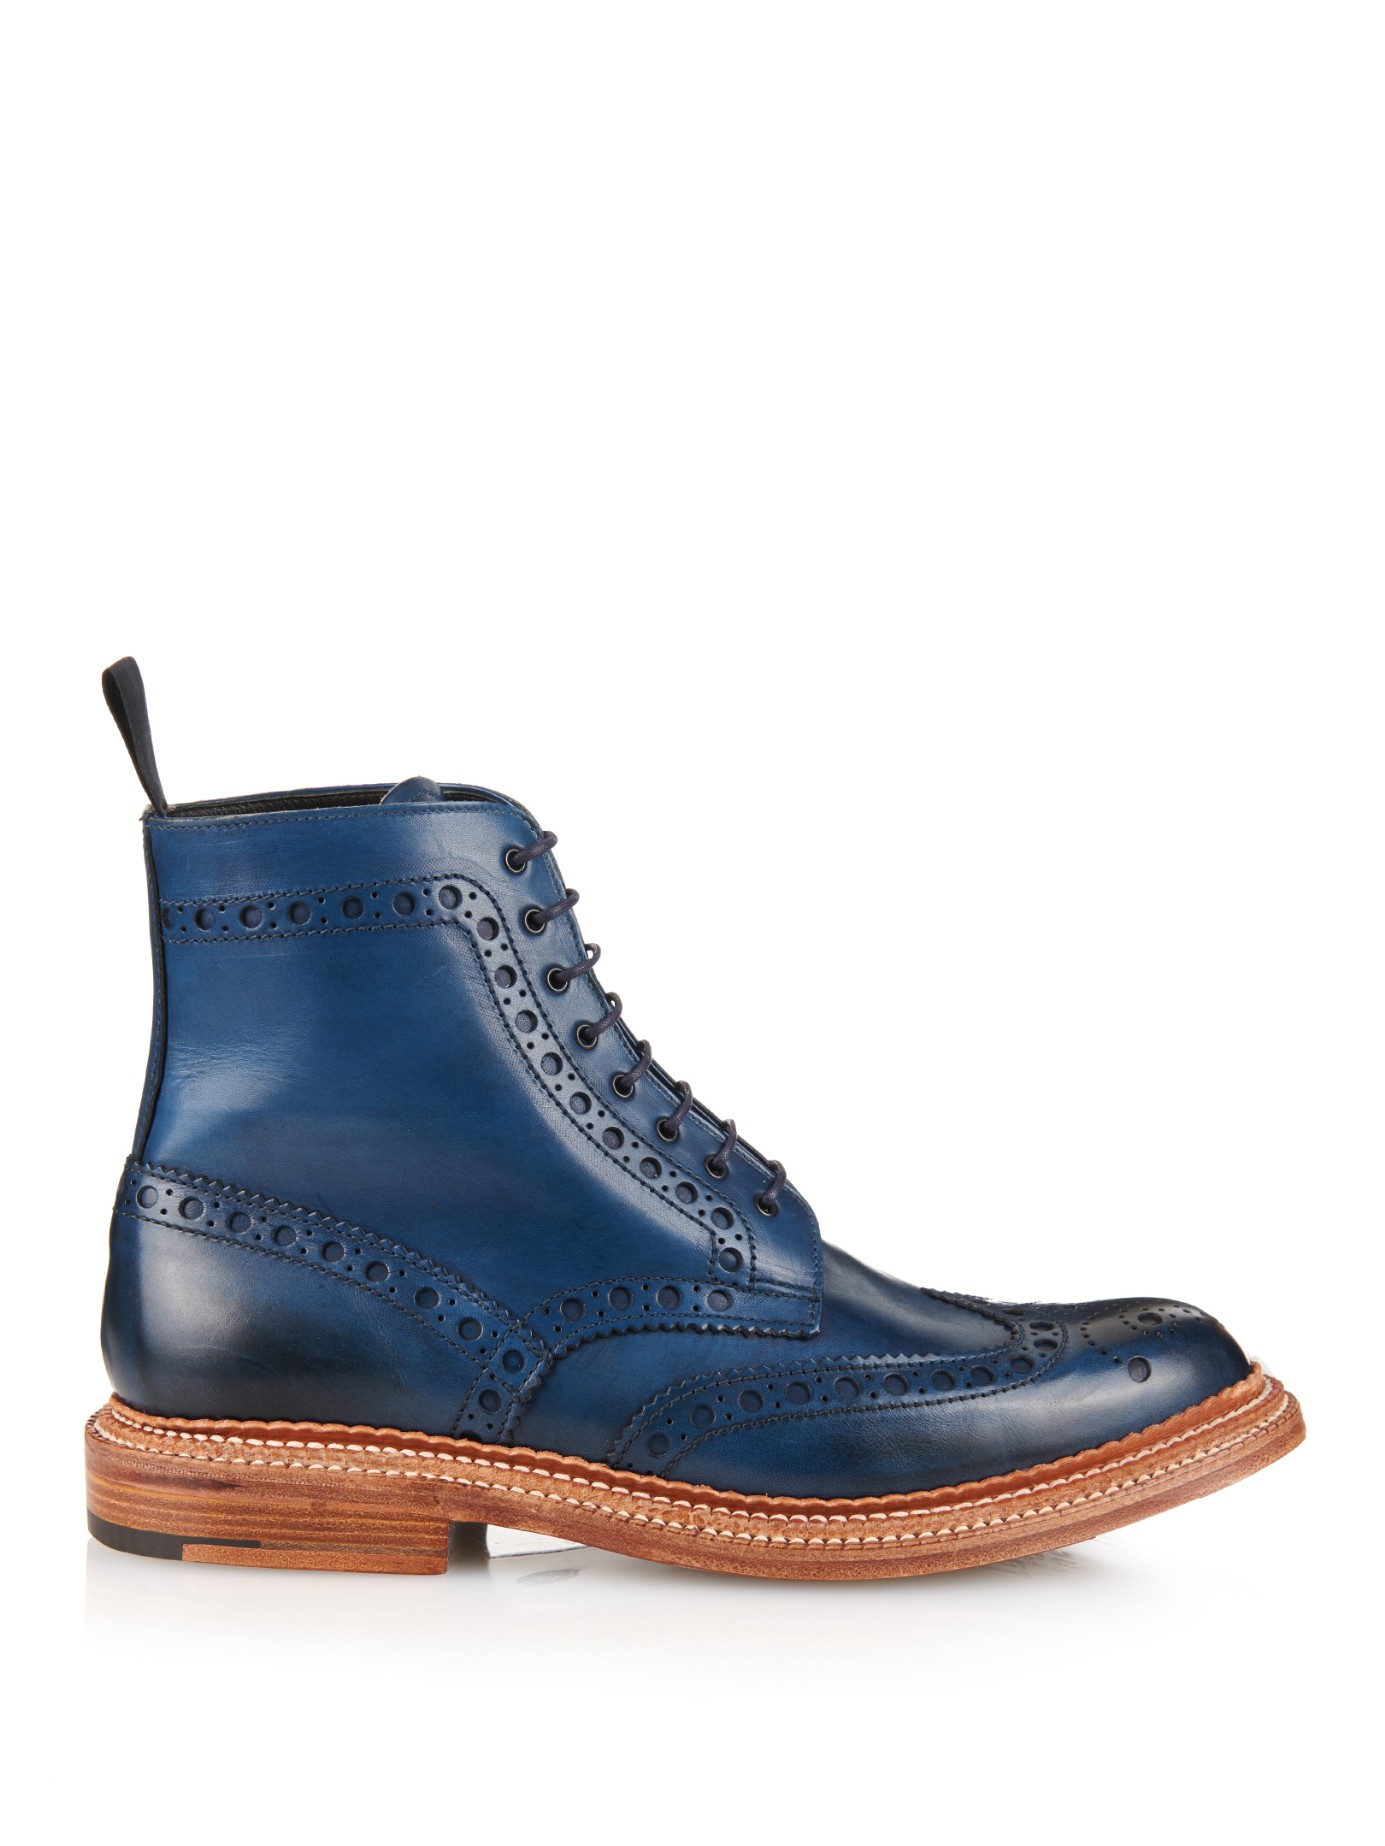 Foot The Coacher Fred Leather Brogue Boots In Blue For Men